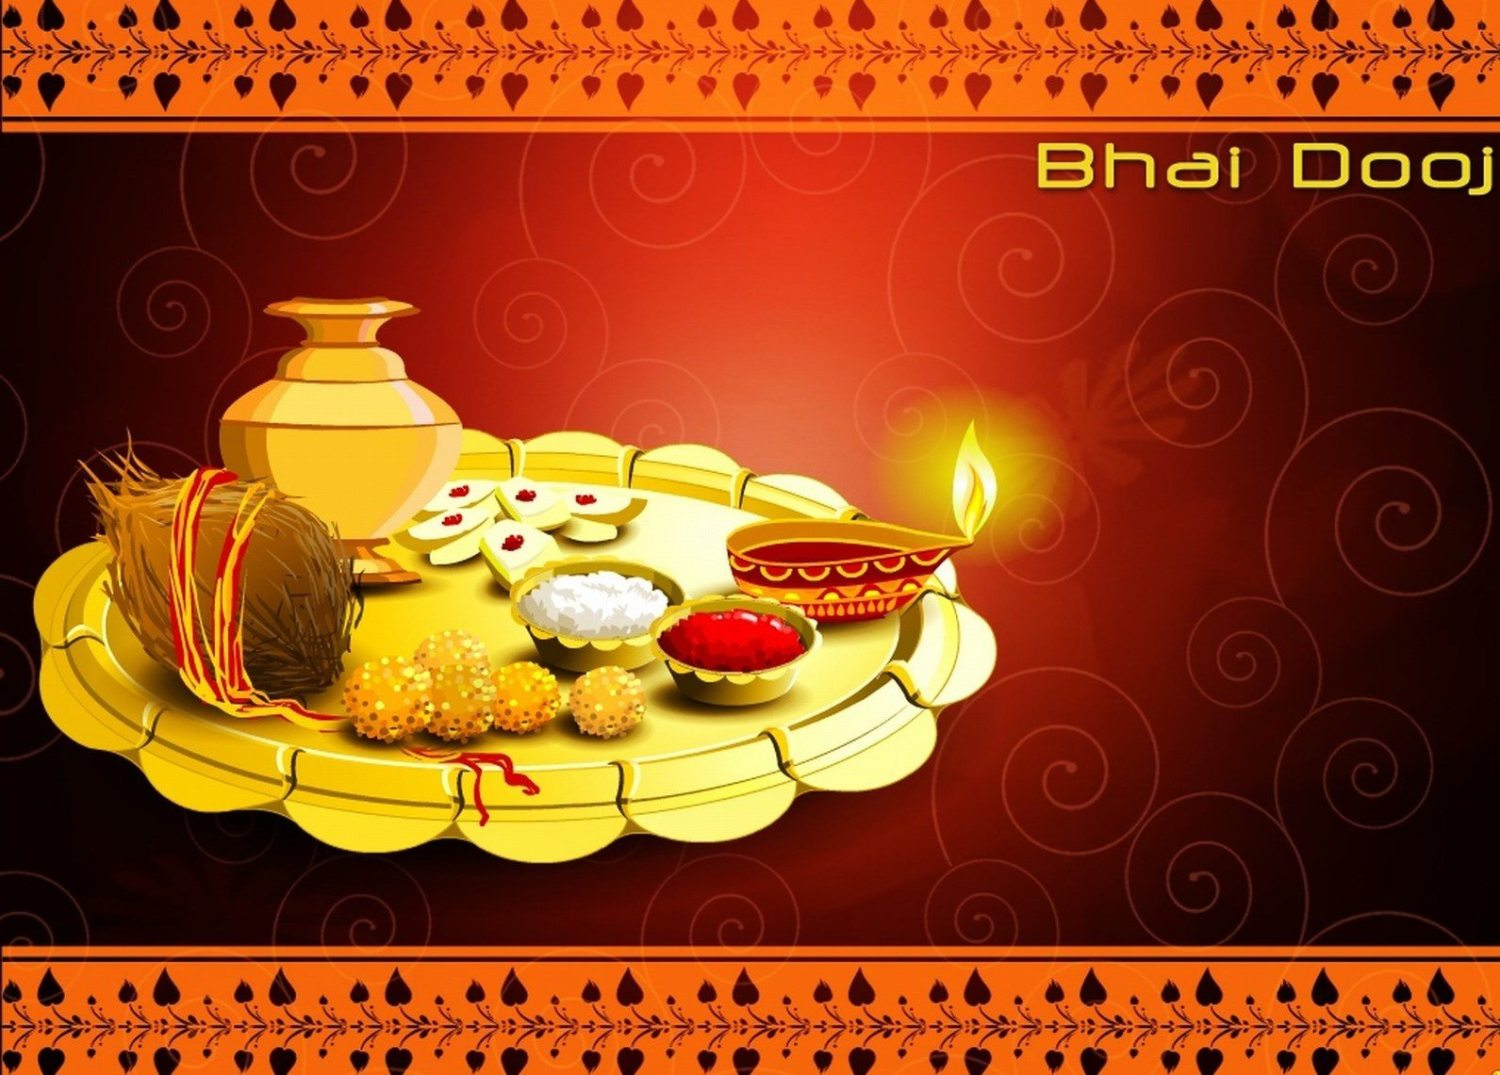 Bhai-Dooj-2014-WhatsApp-greetings.jpg